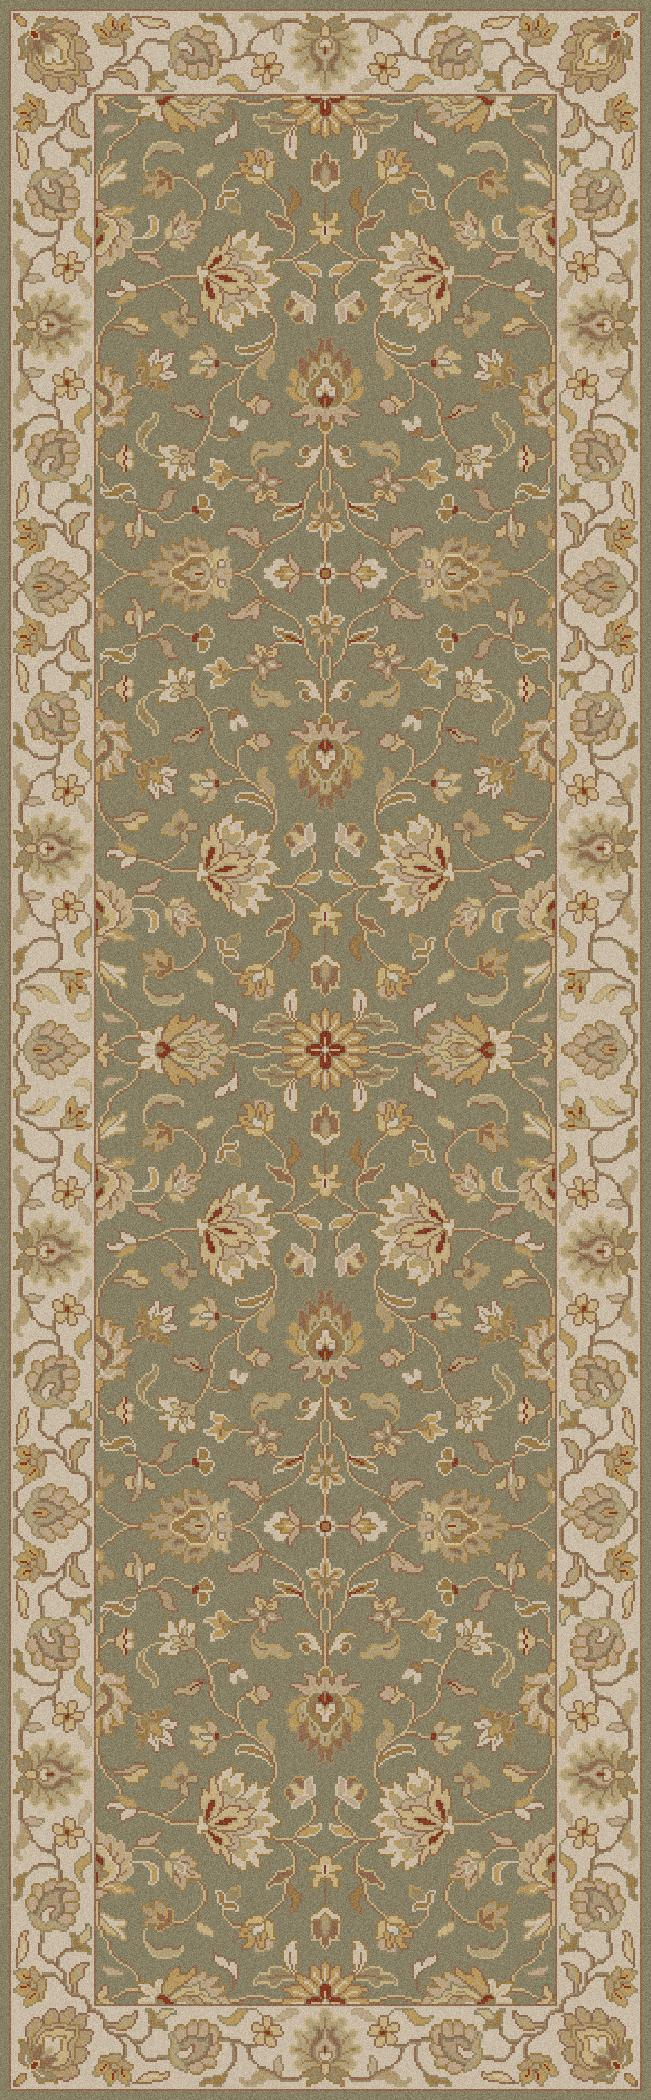 "Surya Rugs Temptress 2'6"" x 8' - Item Number: TMS3000-268"